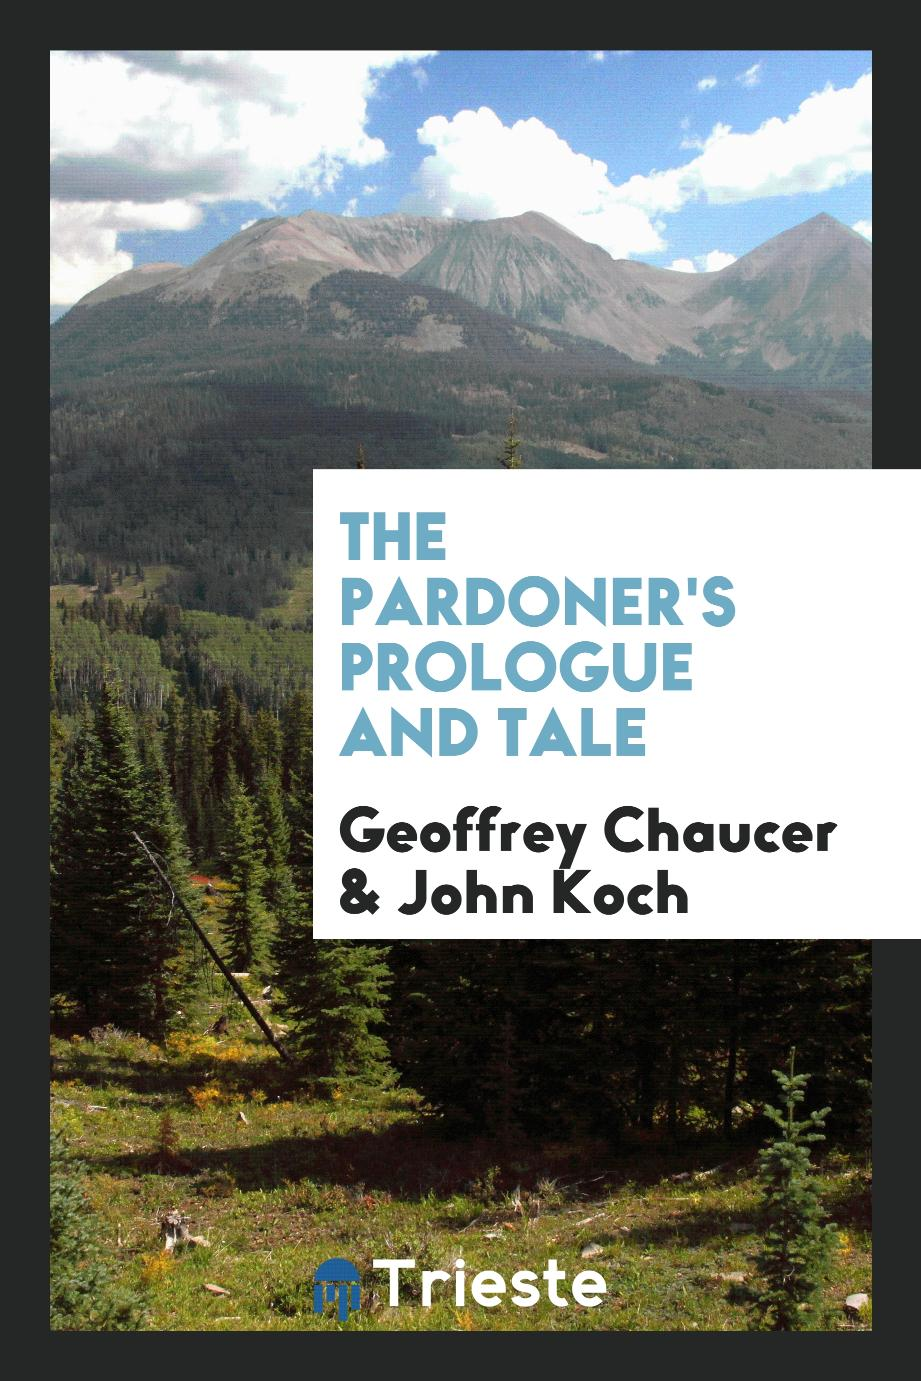 The Pardoner's prologue and tale